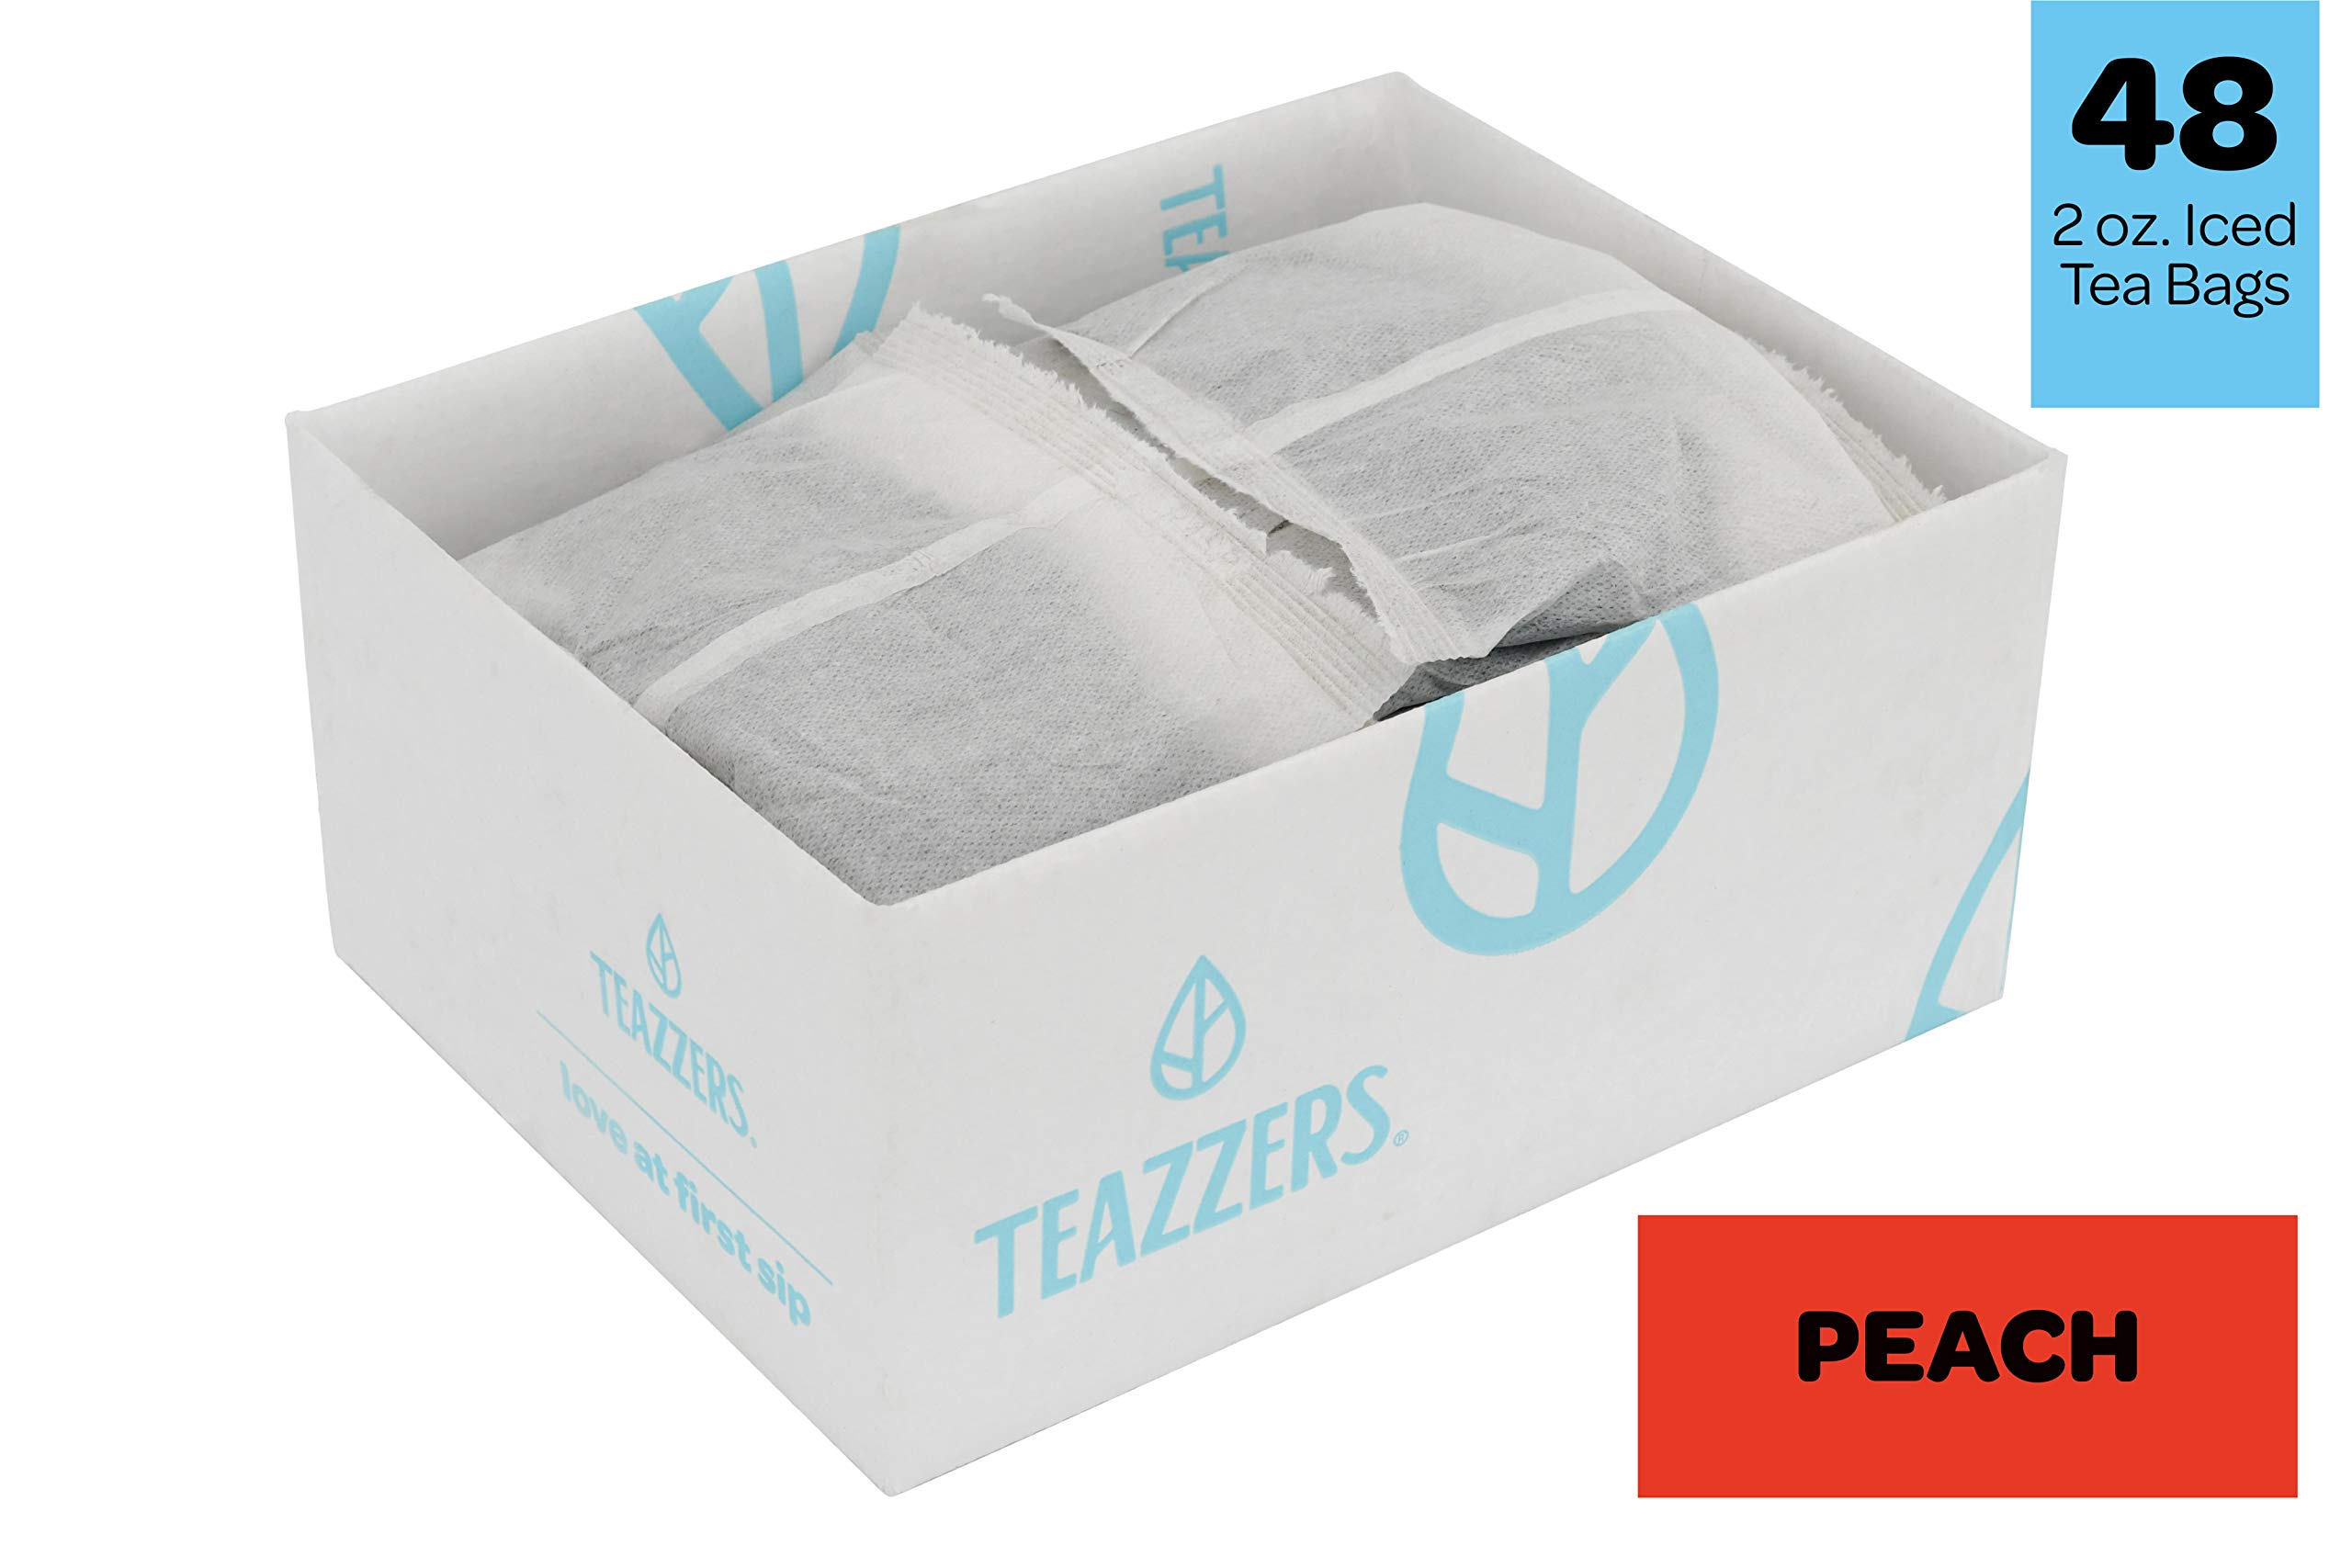 Teazzers Premium Black Peach Tea Bags, Large 2-Gallon Iced Tea Brew, Commercial Size Tea Filters, Bulk 48 Pack, 2oz. Great for Foodservice Ice Tea Brewers, Unsweetened